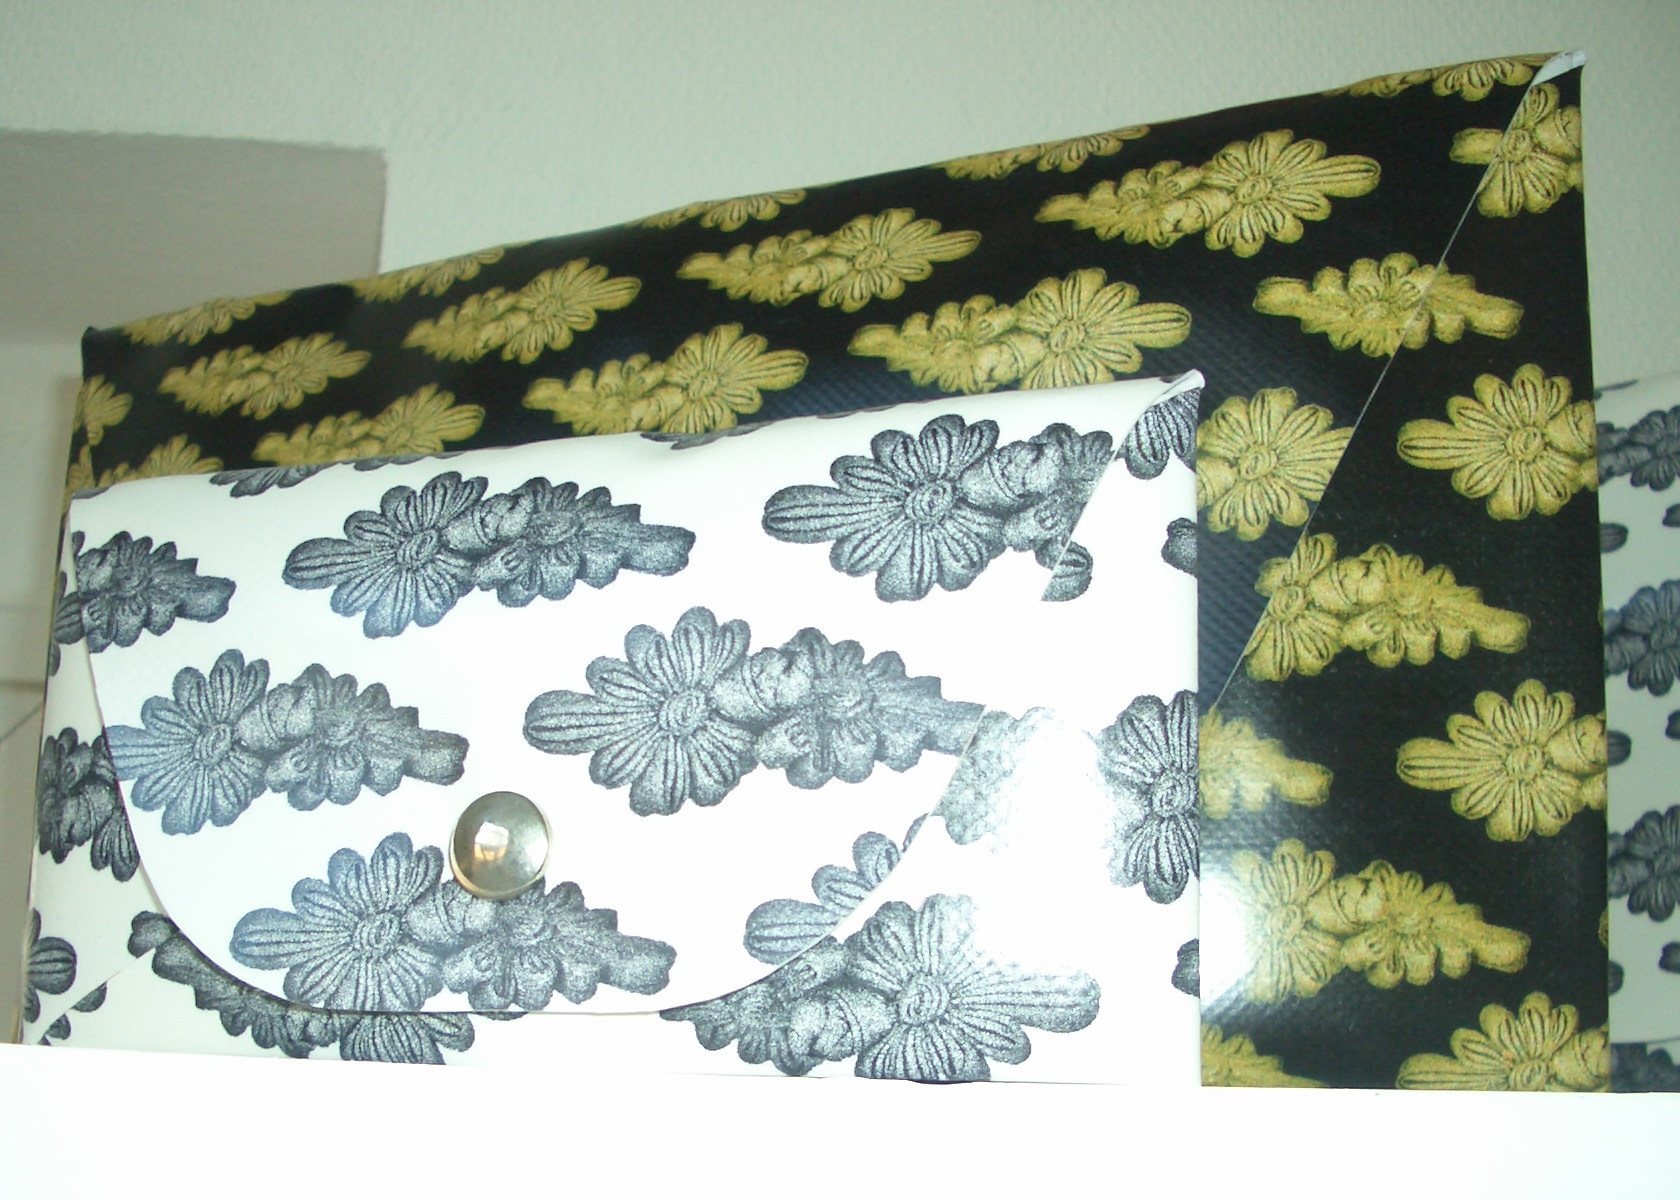 Envelope Bags 2000: Golden Knots on Black